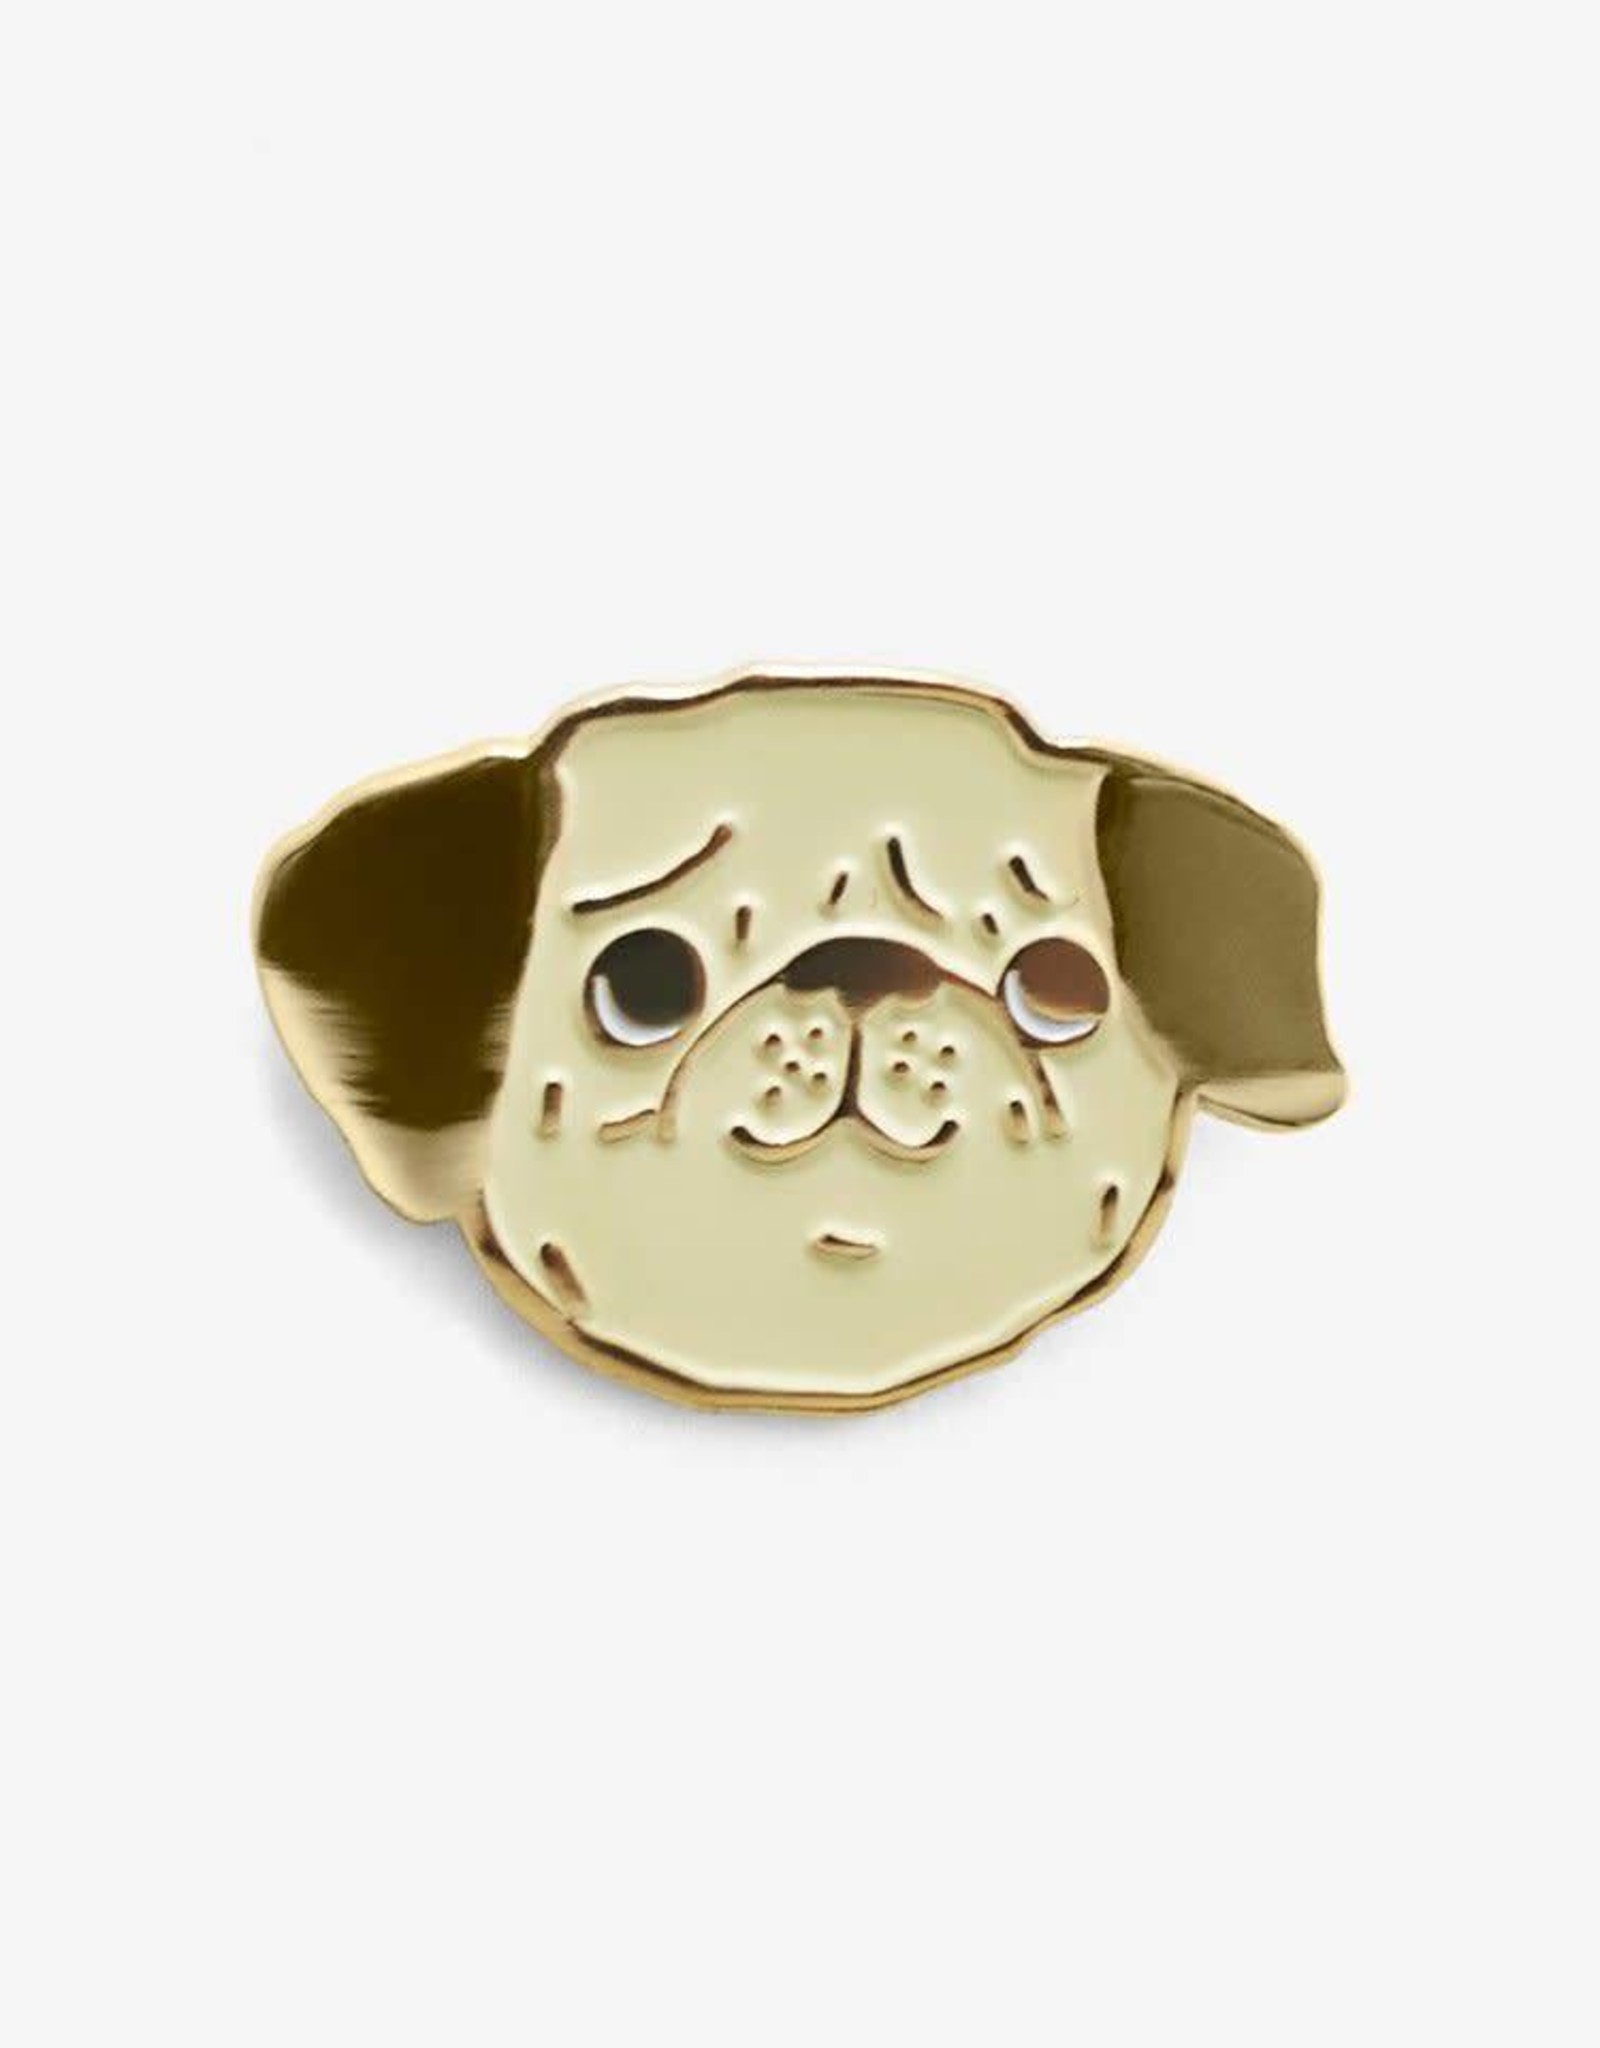 Peggy the Pug Enamel Pin